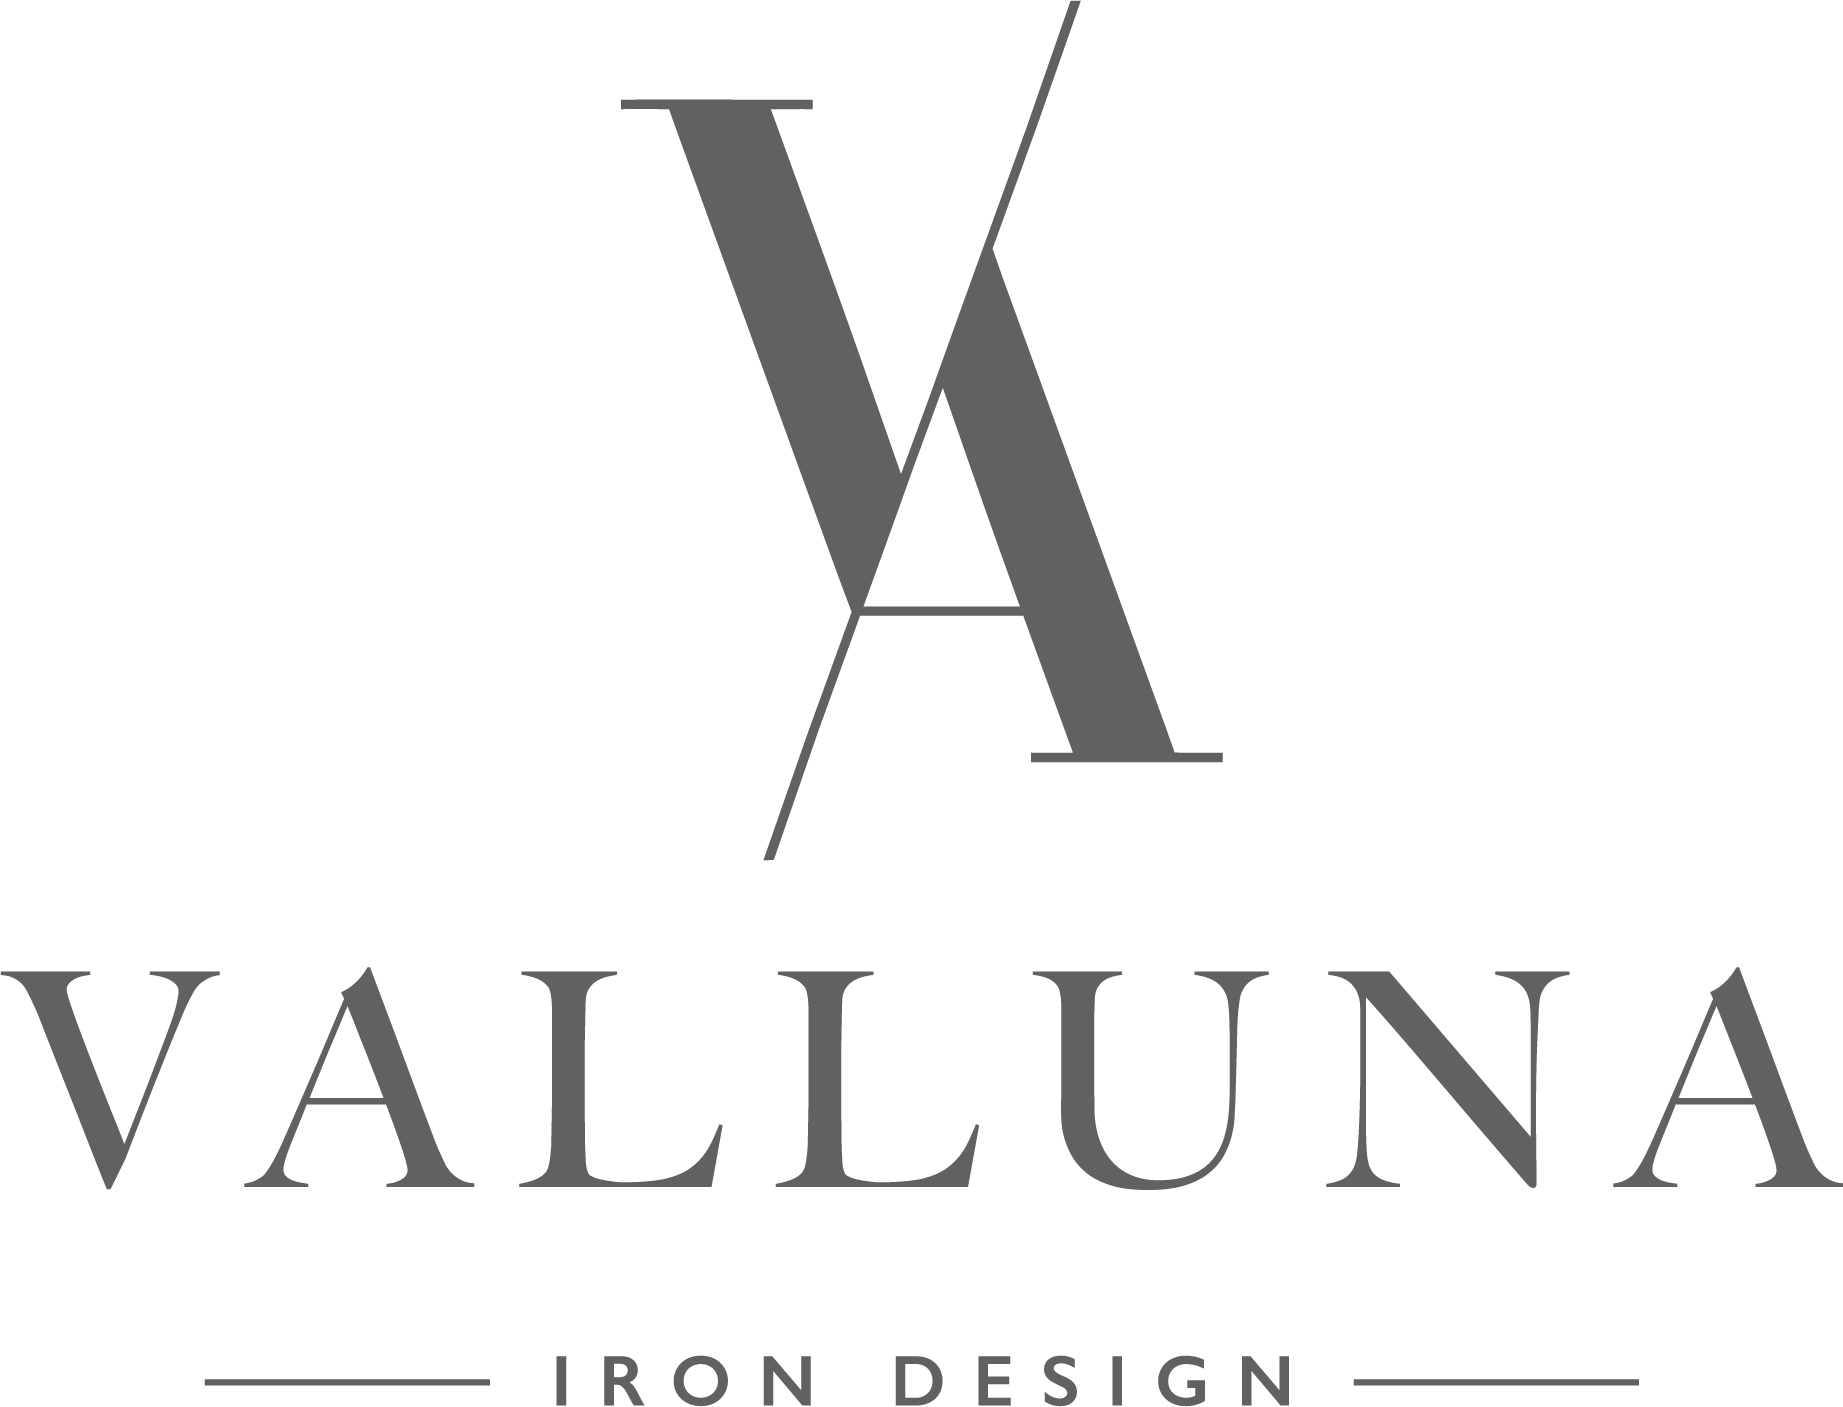 Valluna - Iron Design